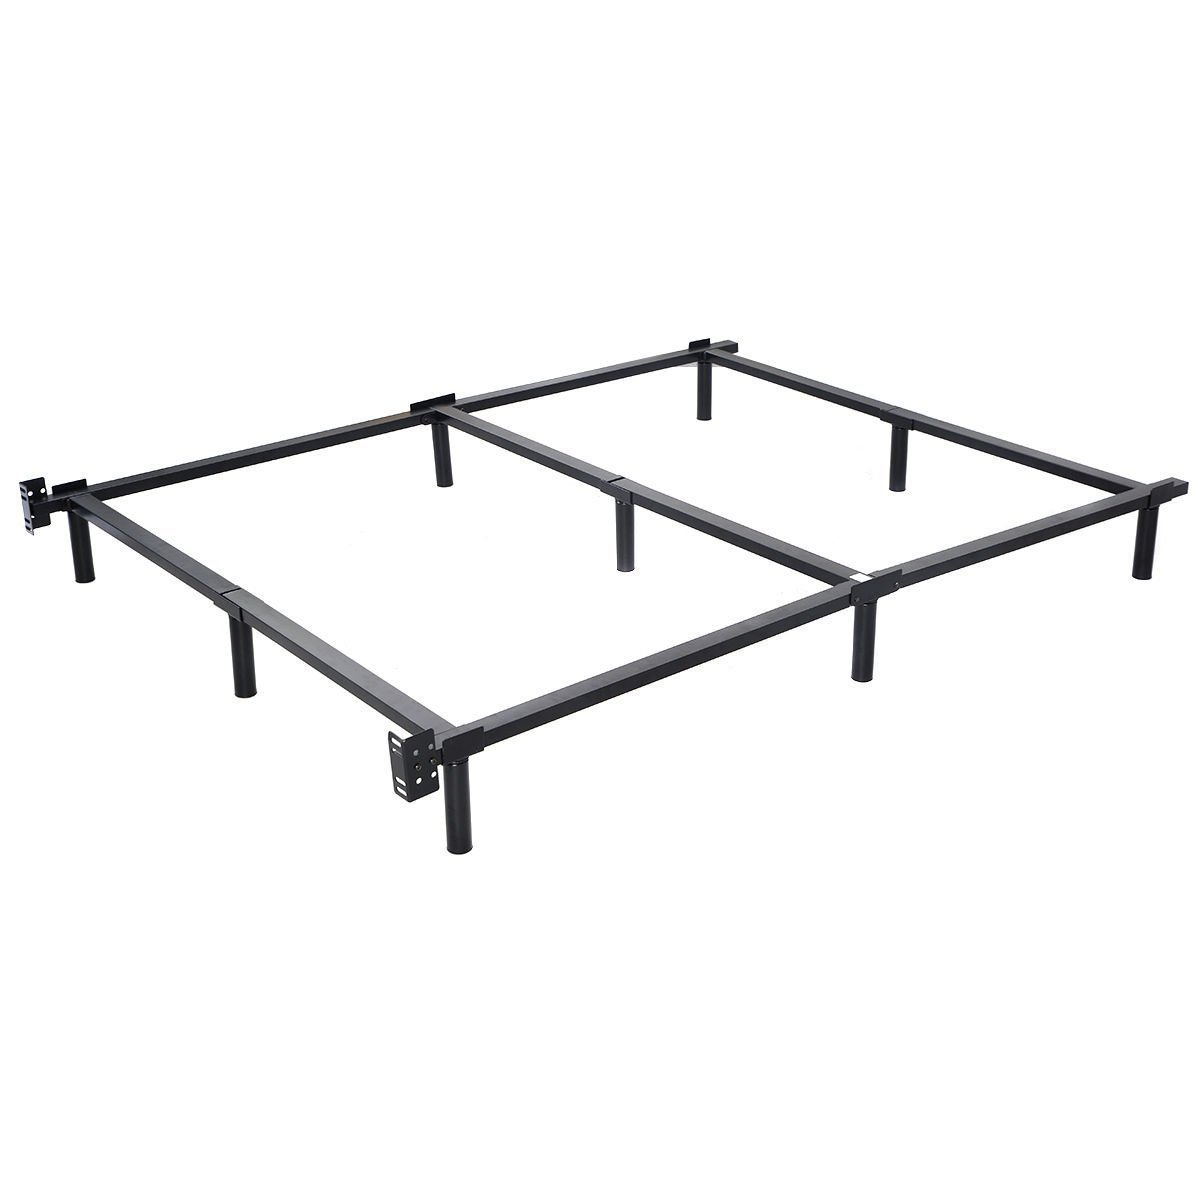 Giantex Black Folding Heavy Duty Metal Bed Frame Center Support Bedroom (Full Size)